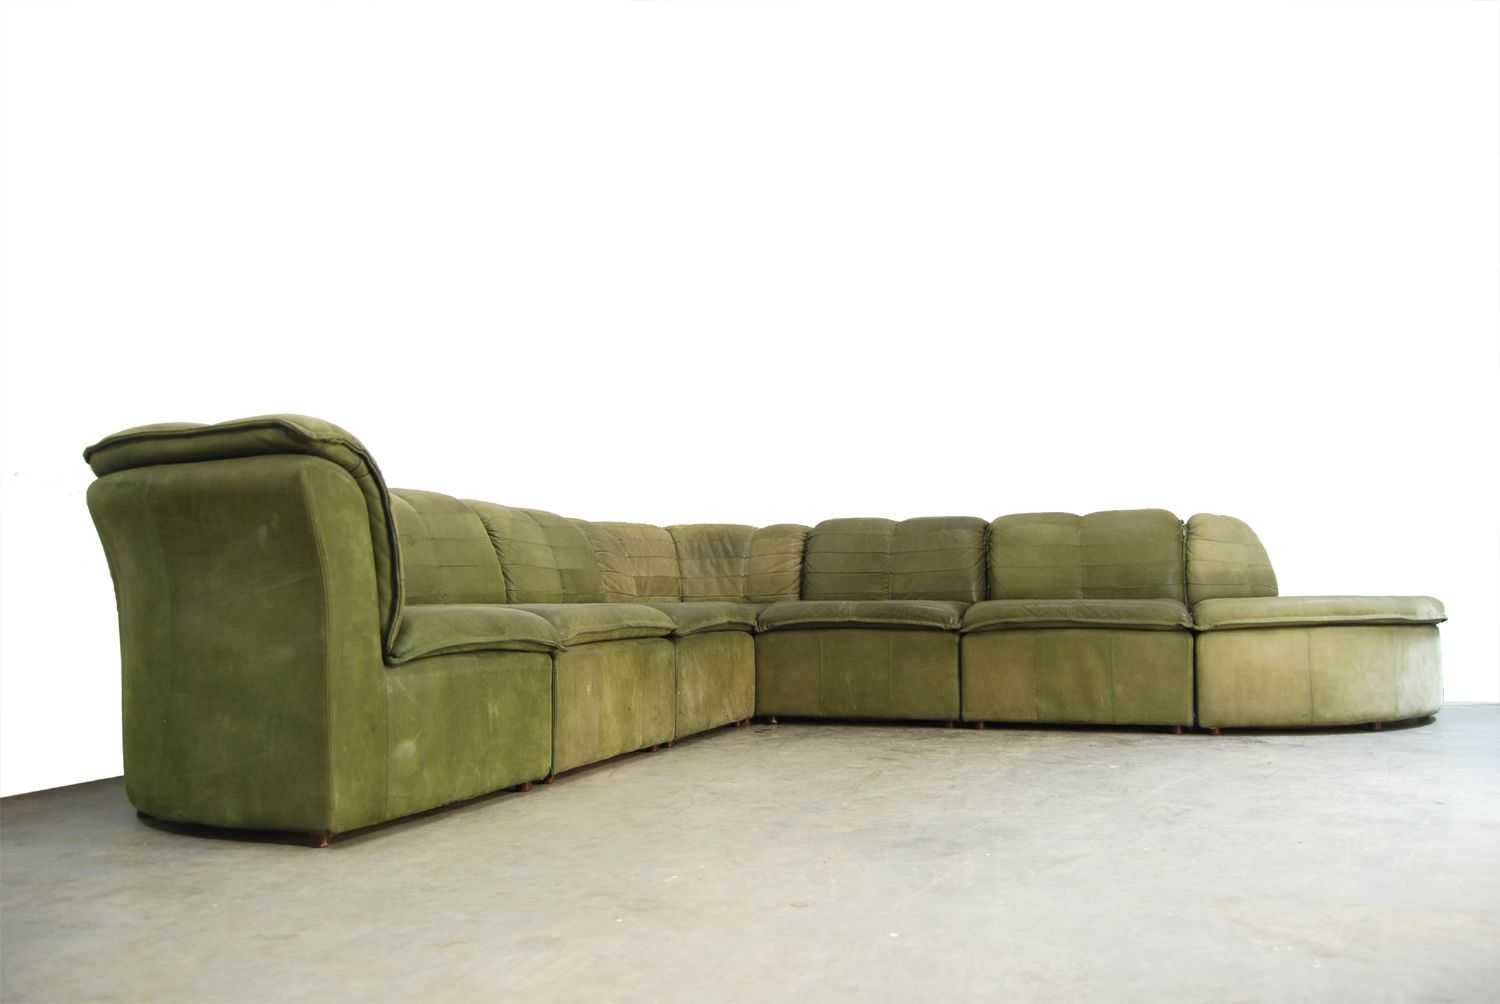 nubuck leather sofa carlyle nyc locations modular from laauser 1970s for sale